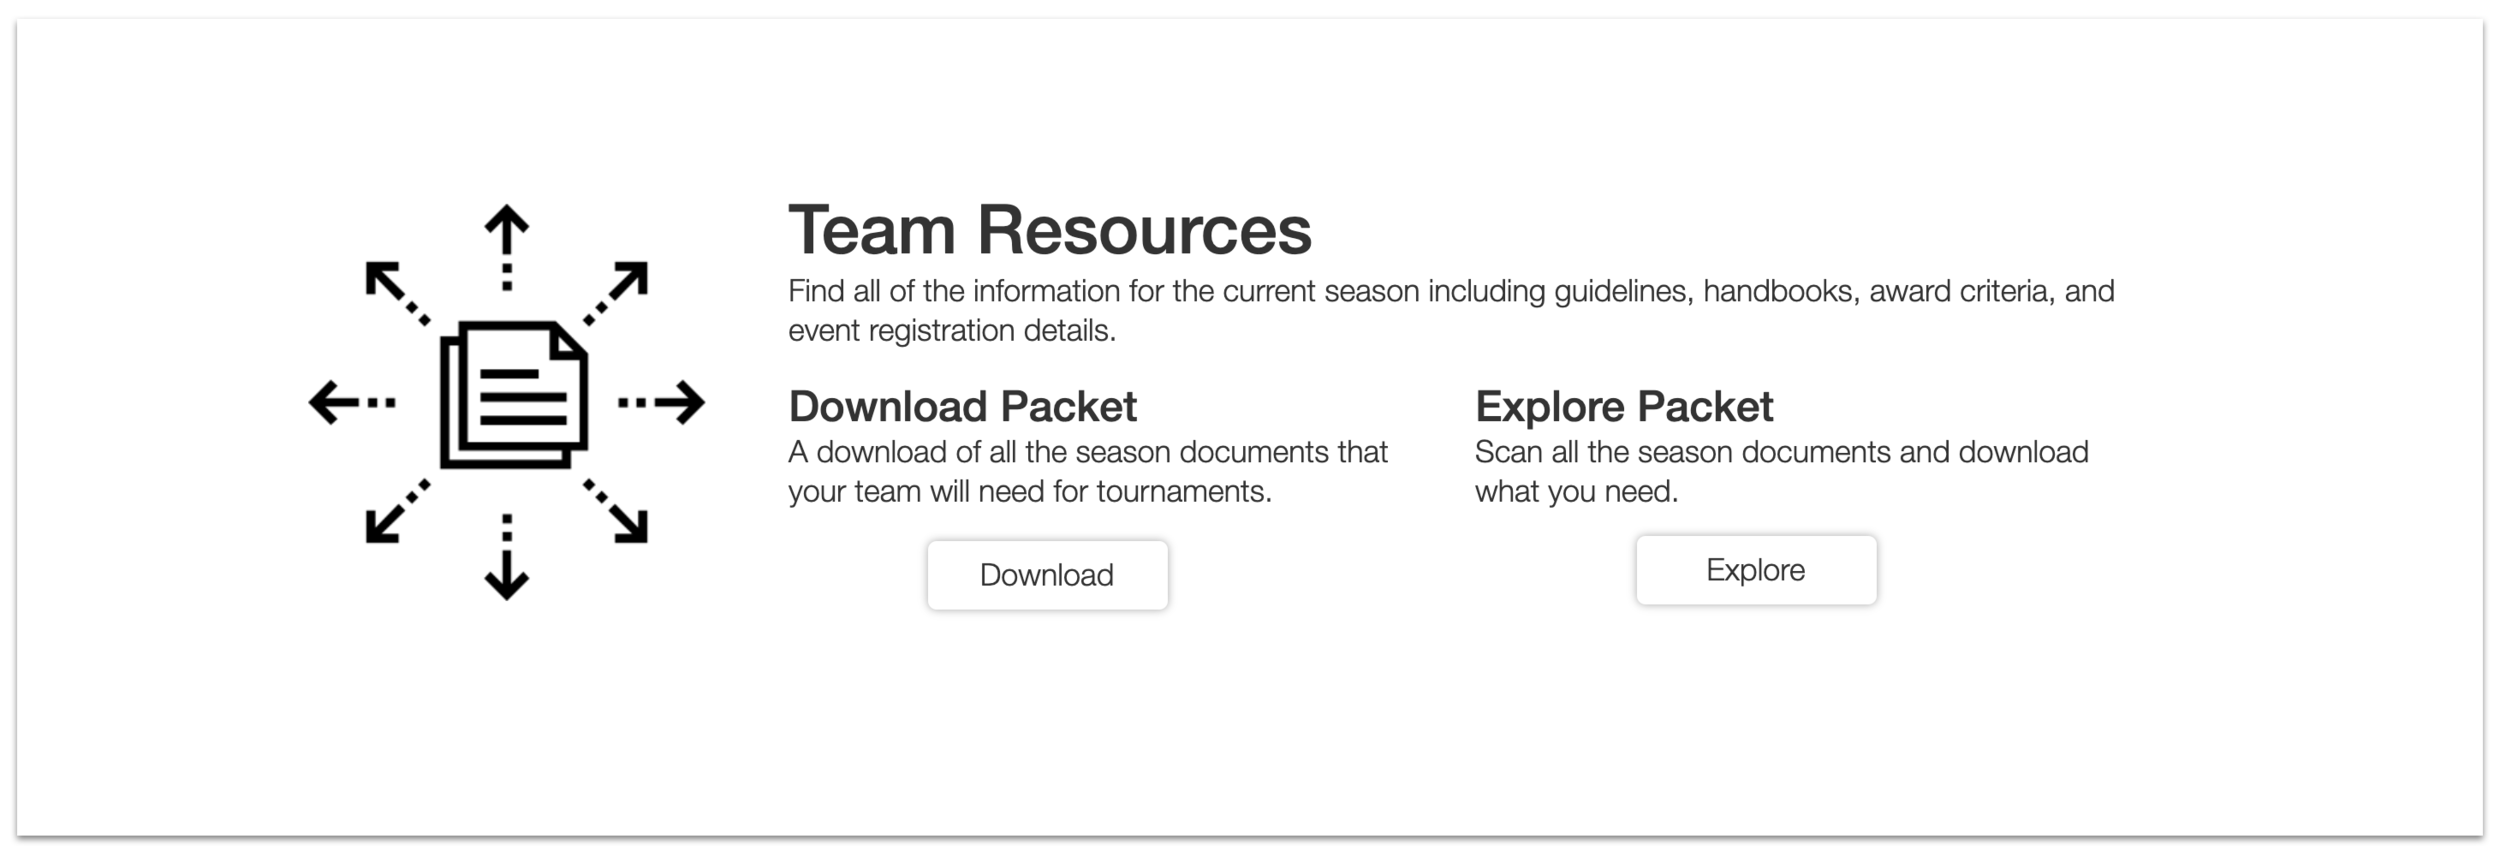 Team Resources Feature